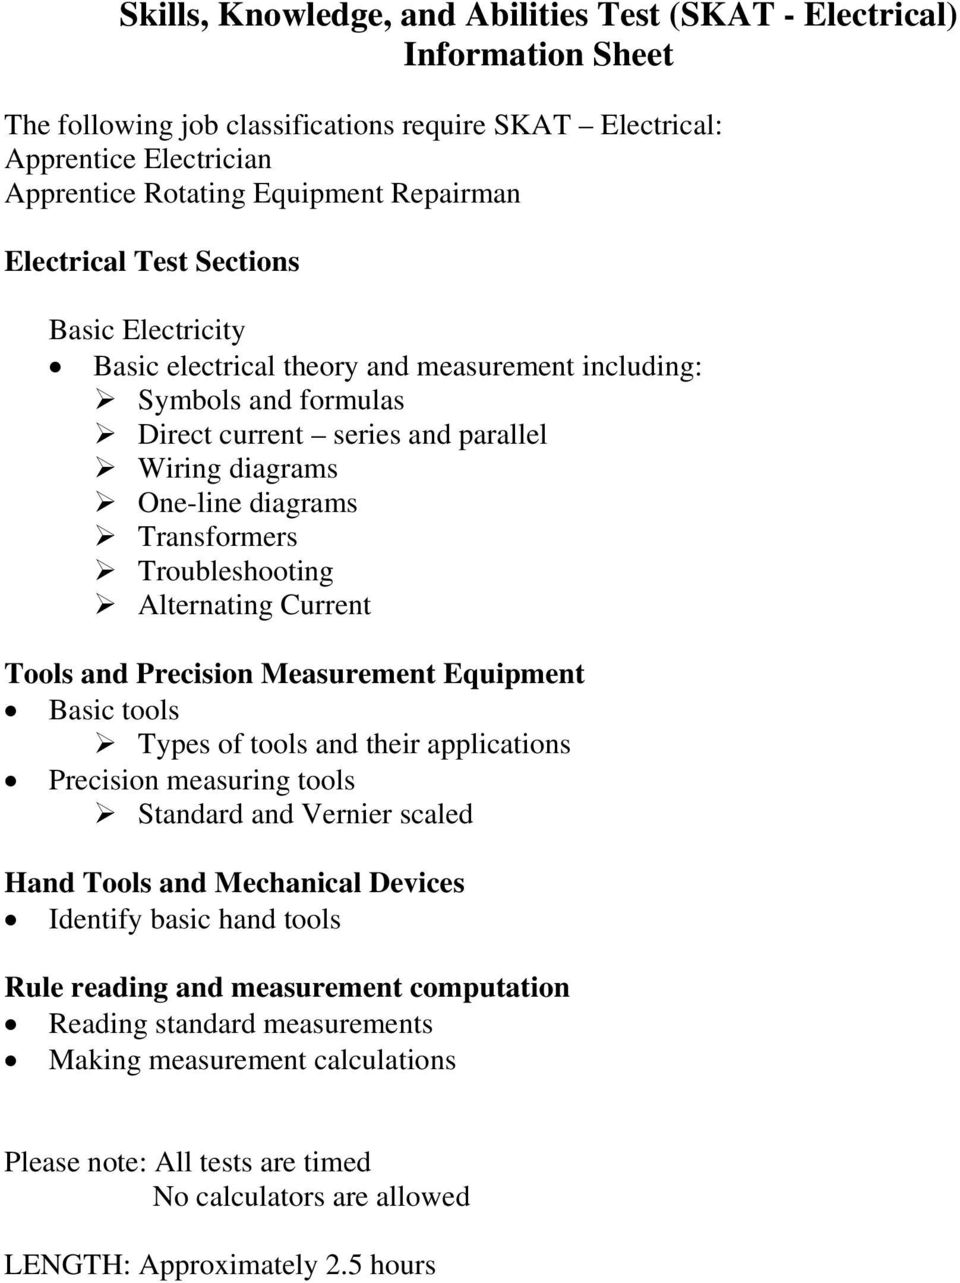 Skills, Knowledge, and Abilities Test (SKAT - Electrical ... on